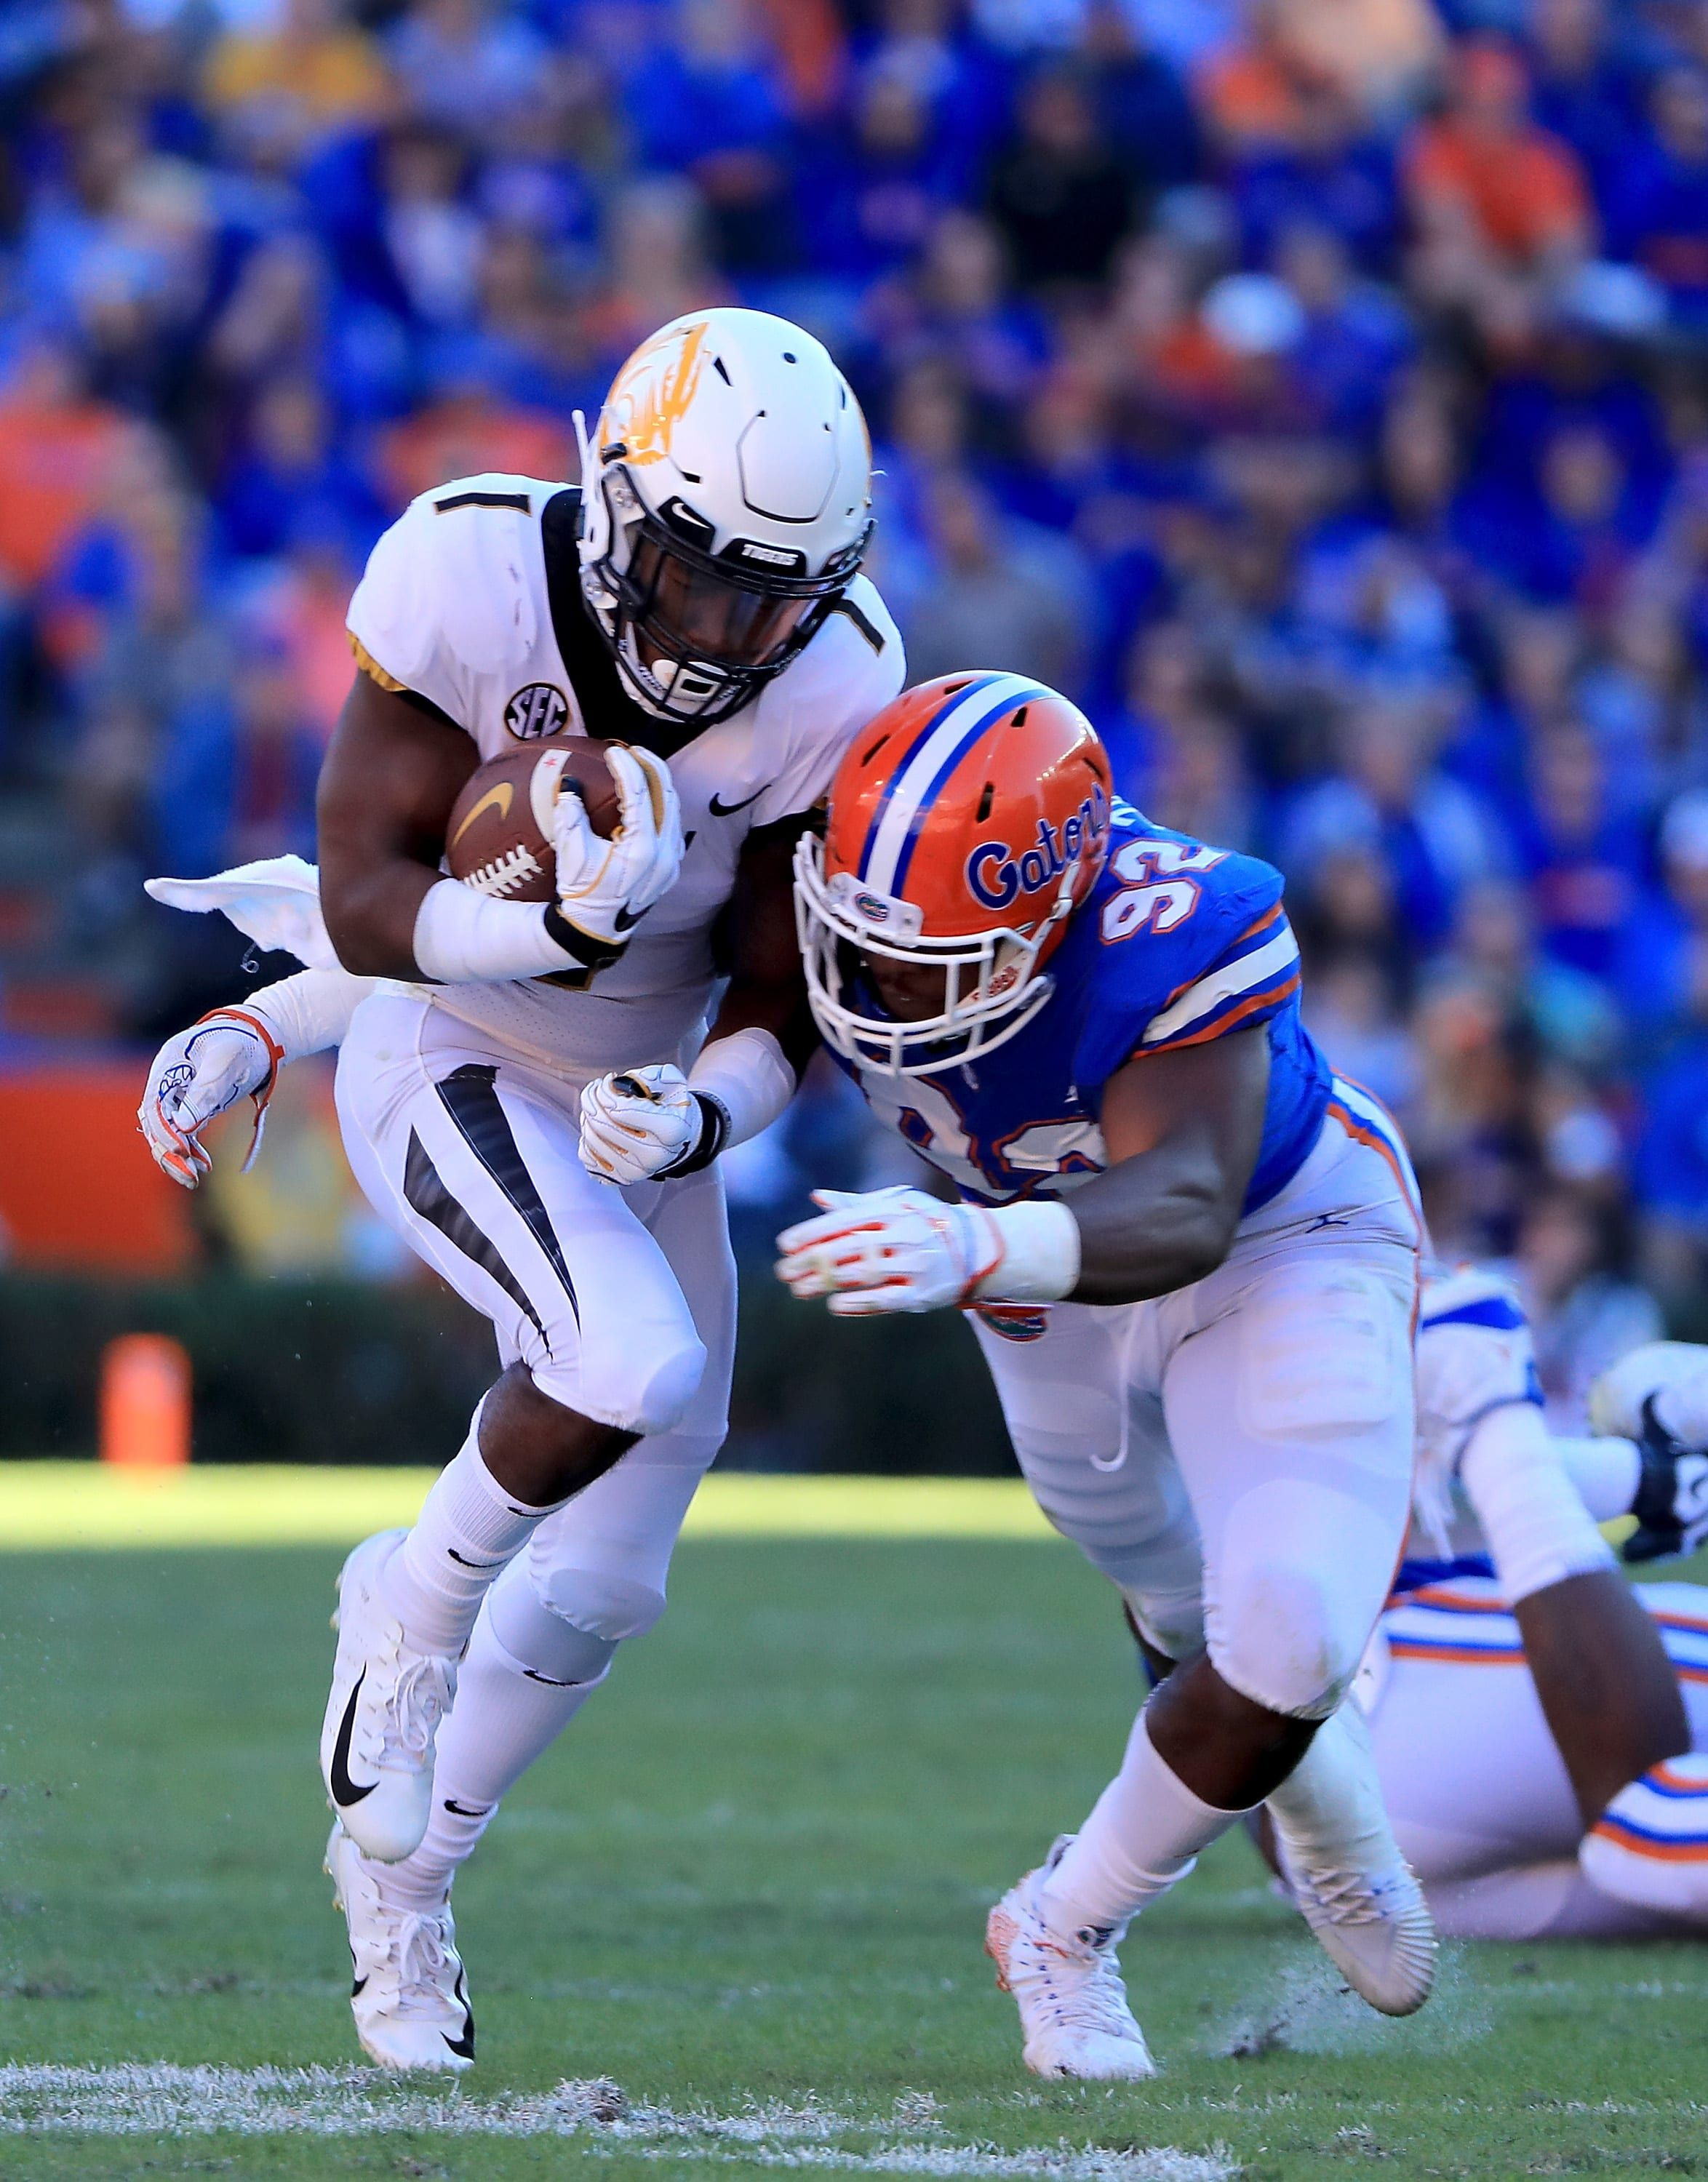 Cover 4 On Georgia Football The Gators To Really Worry In 2020 Georgia Football Football Missouri Tigers